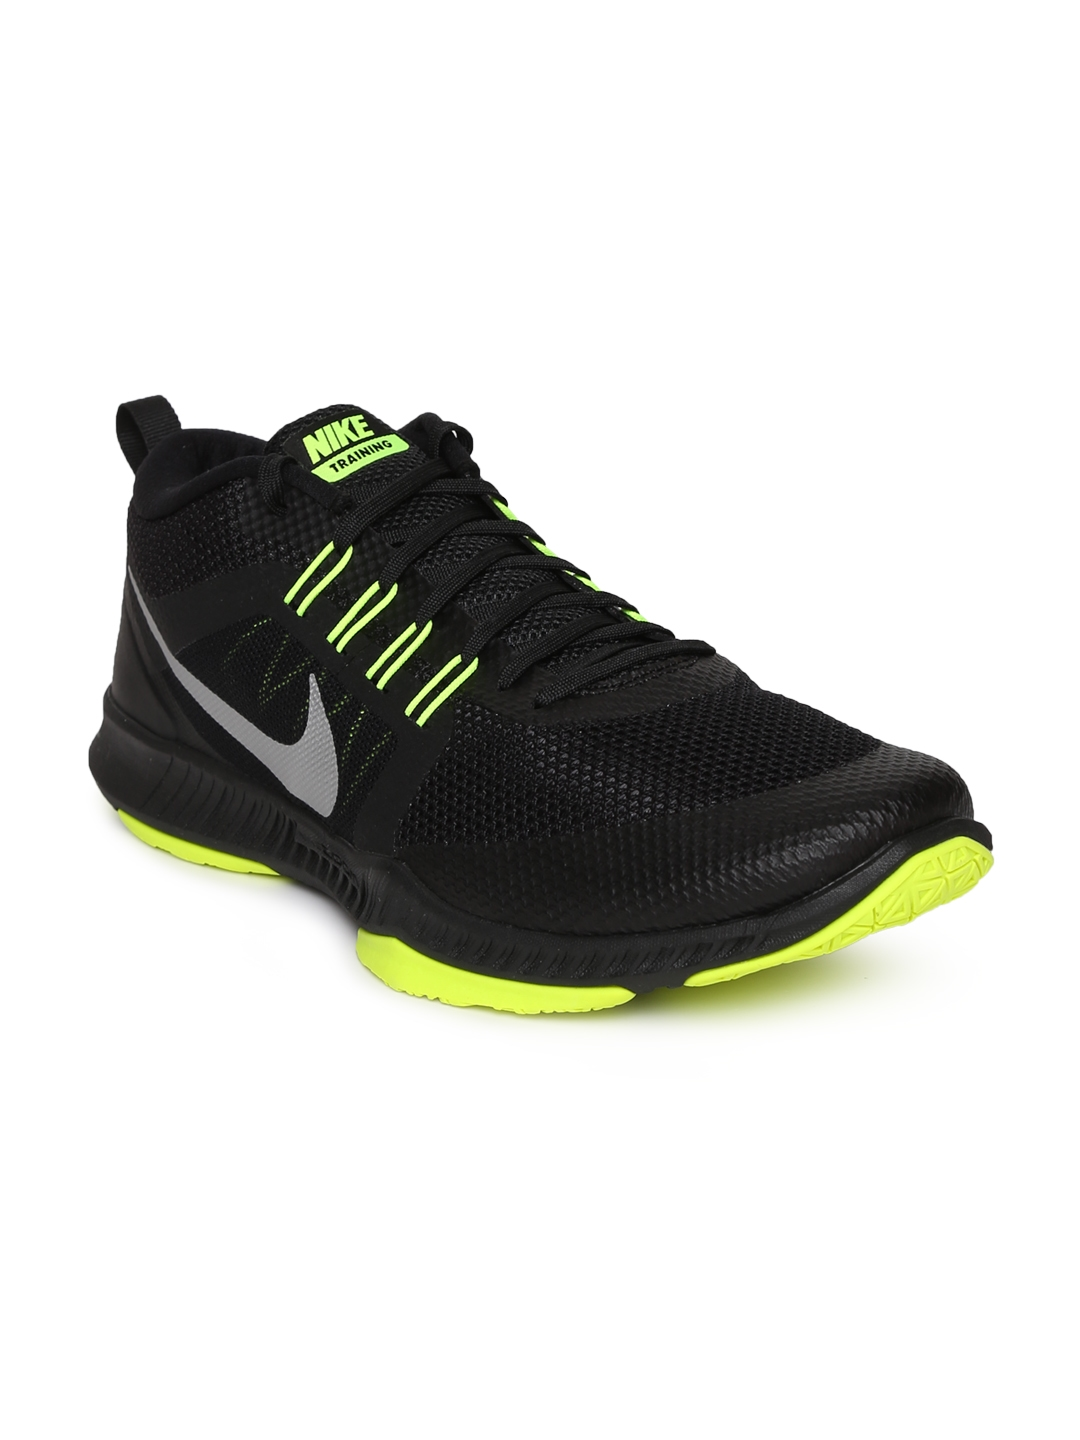 official photos 7a681 43fbb Nike Men Black ZOOM DOMINATION TR Training or Gym Shoes